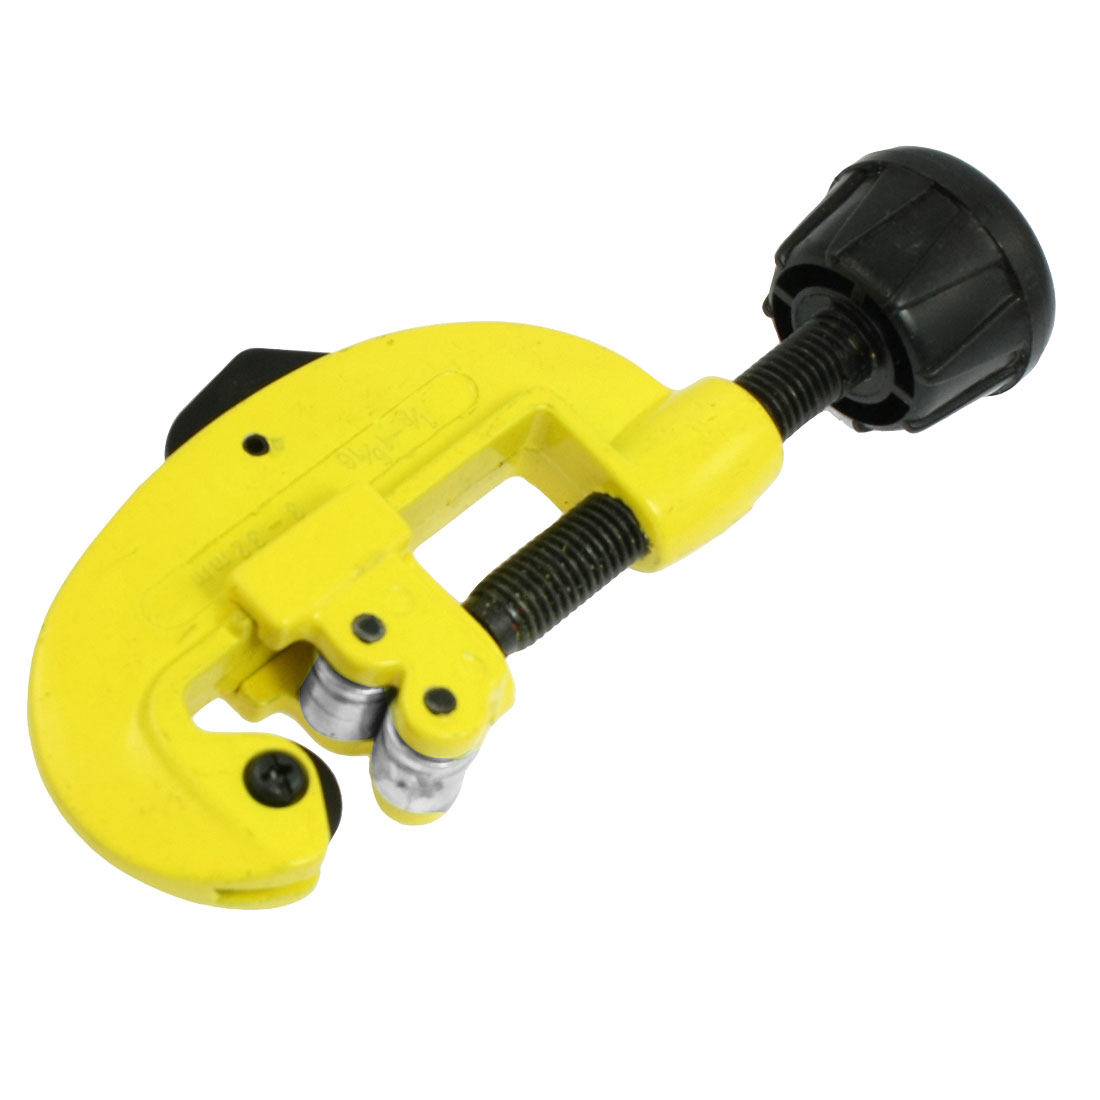 "1/8""-1 5/16"" Cutting Swivel Knob Tubing Pipe Cutter Hand Tool Yellow 5.5"""